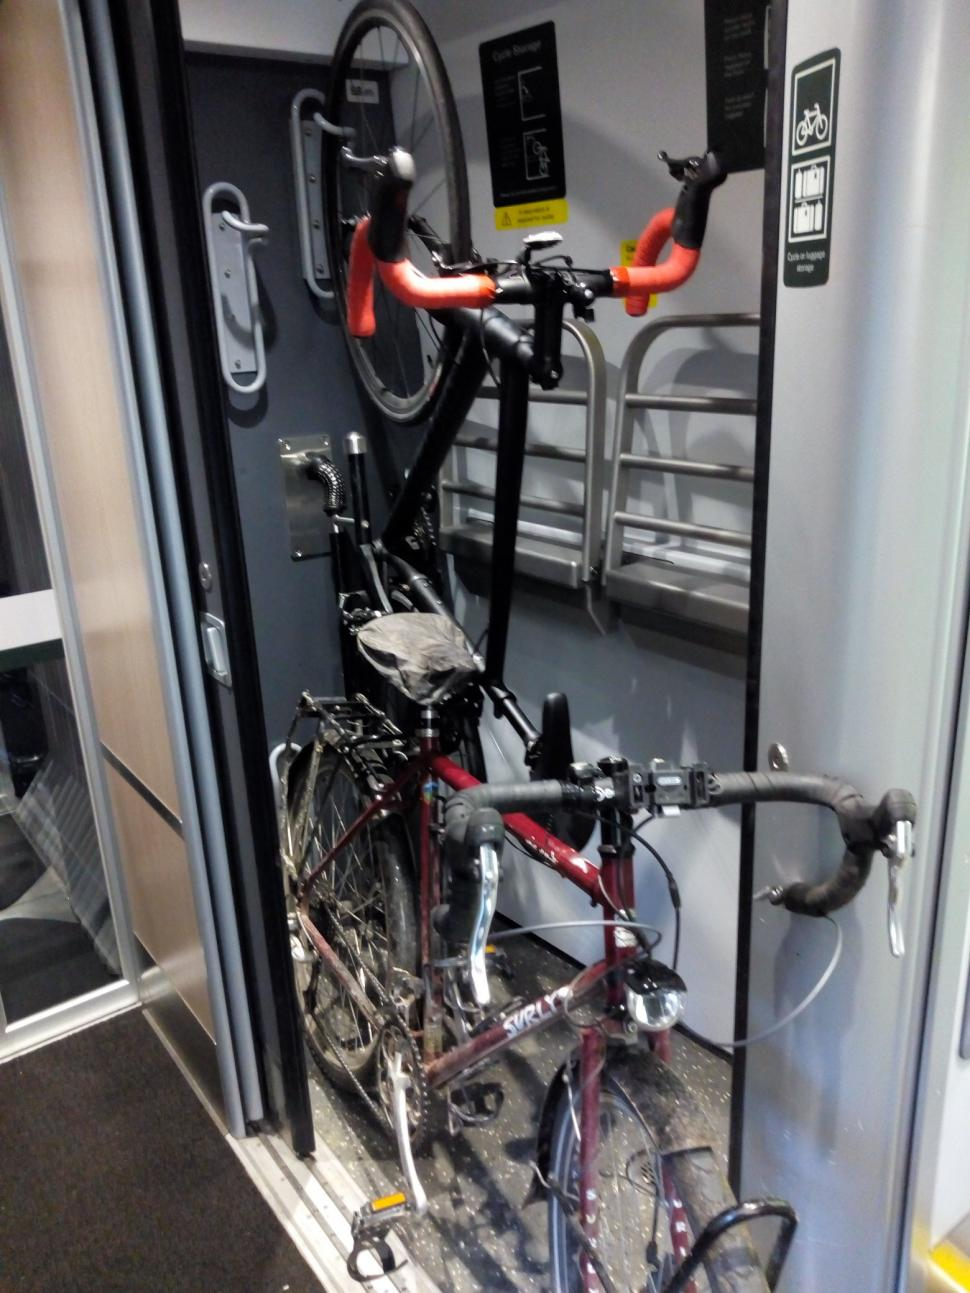 GWR bike storage (picture courtesy Sam Jones, Cycling UK)